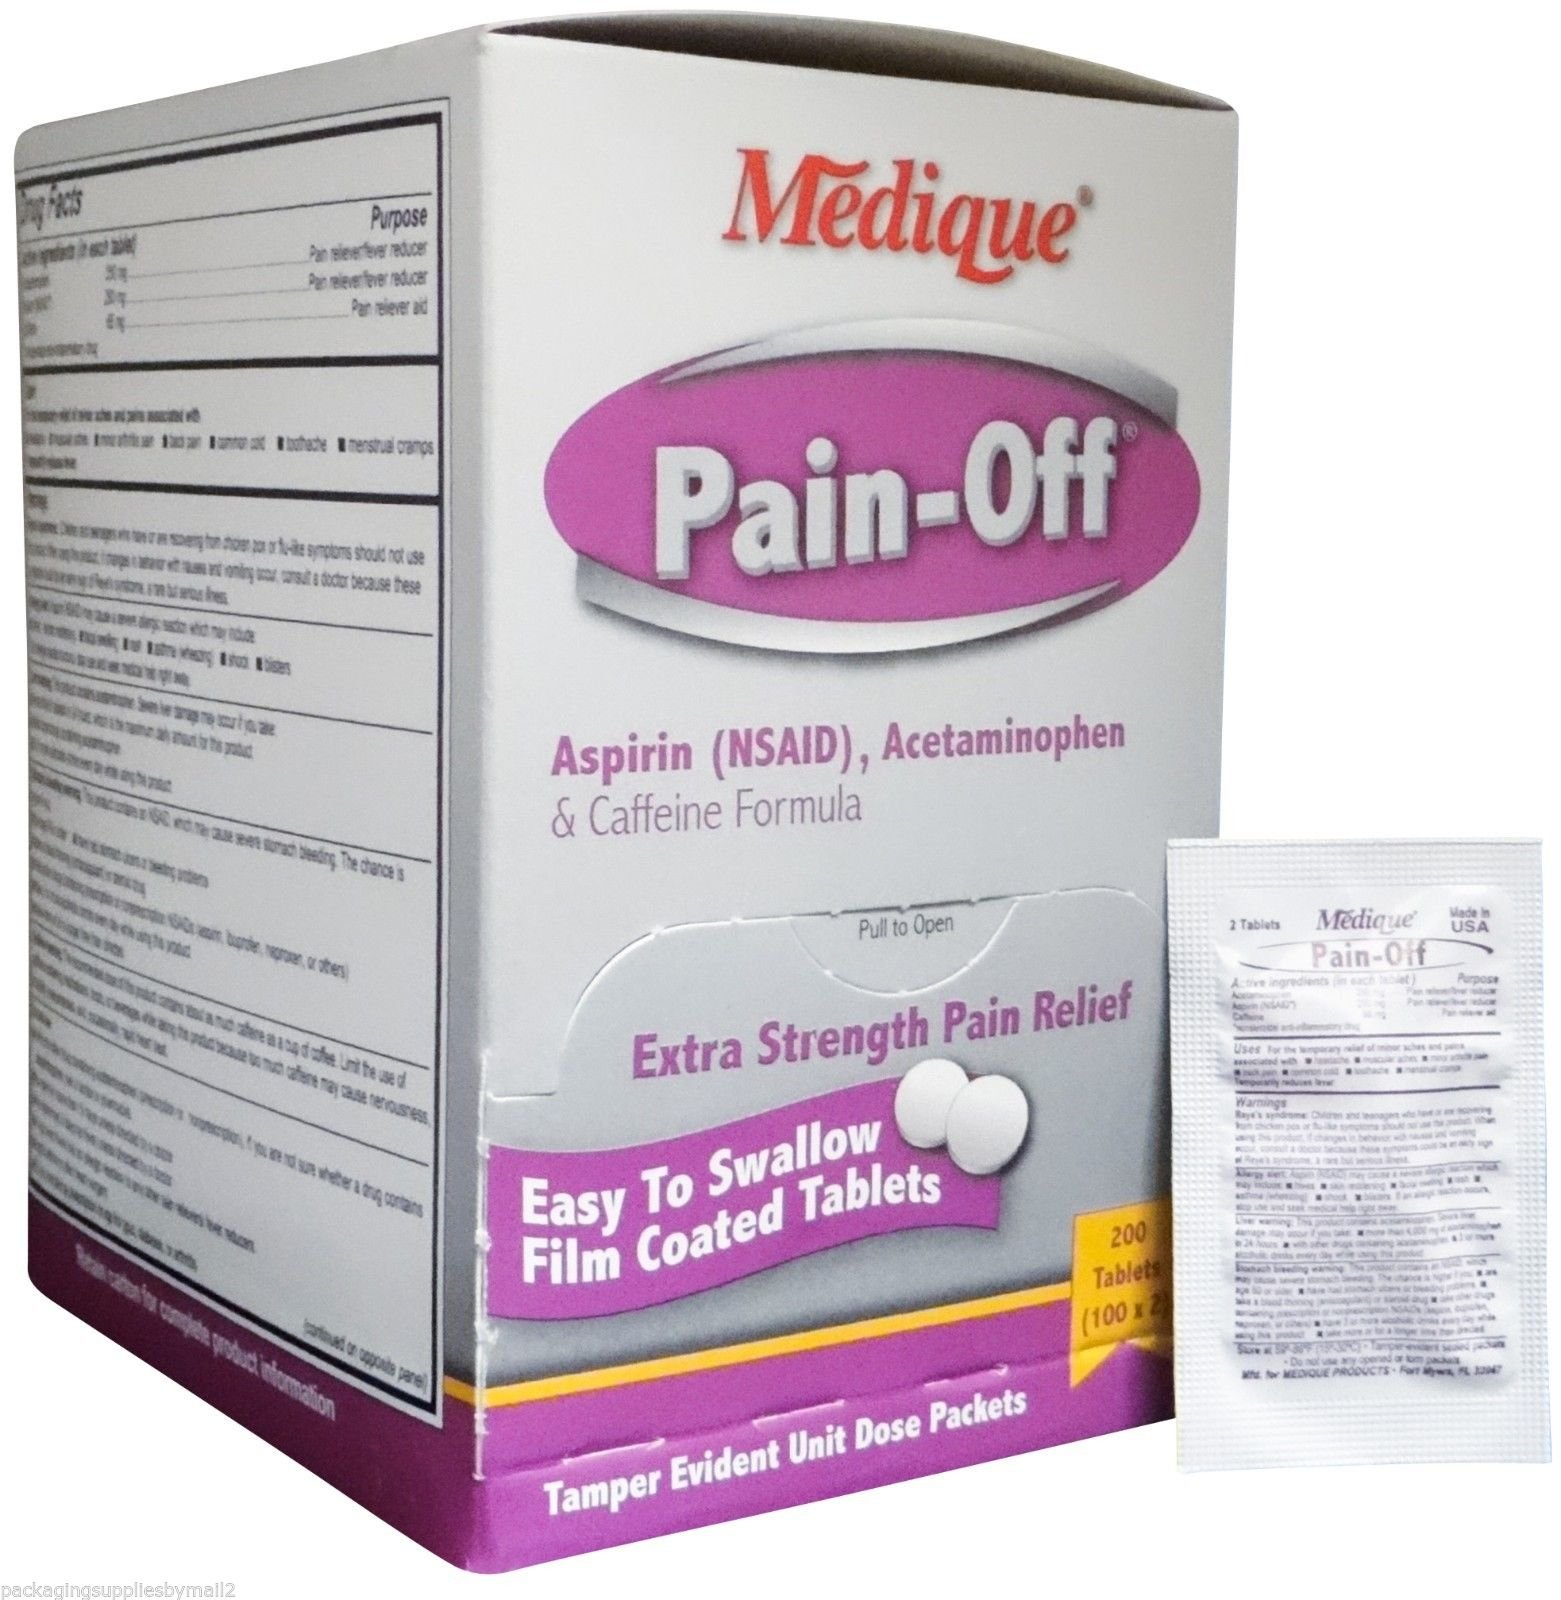 Pain-Off Extra Strength Pain Reliever Tablets (200 /Bx) 6 Boxes (1200 tablets) by Medique - MS71170 by Medique